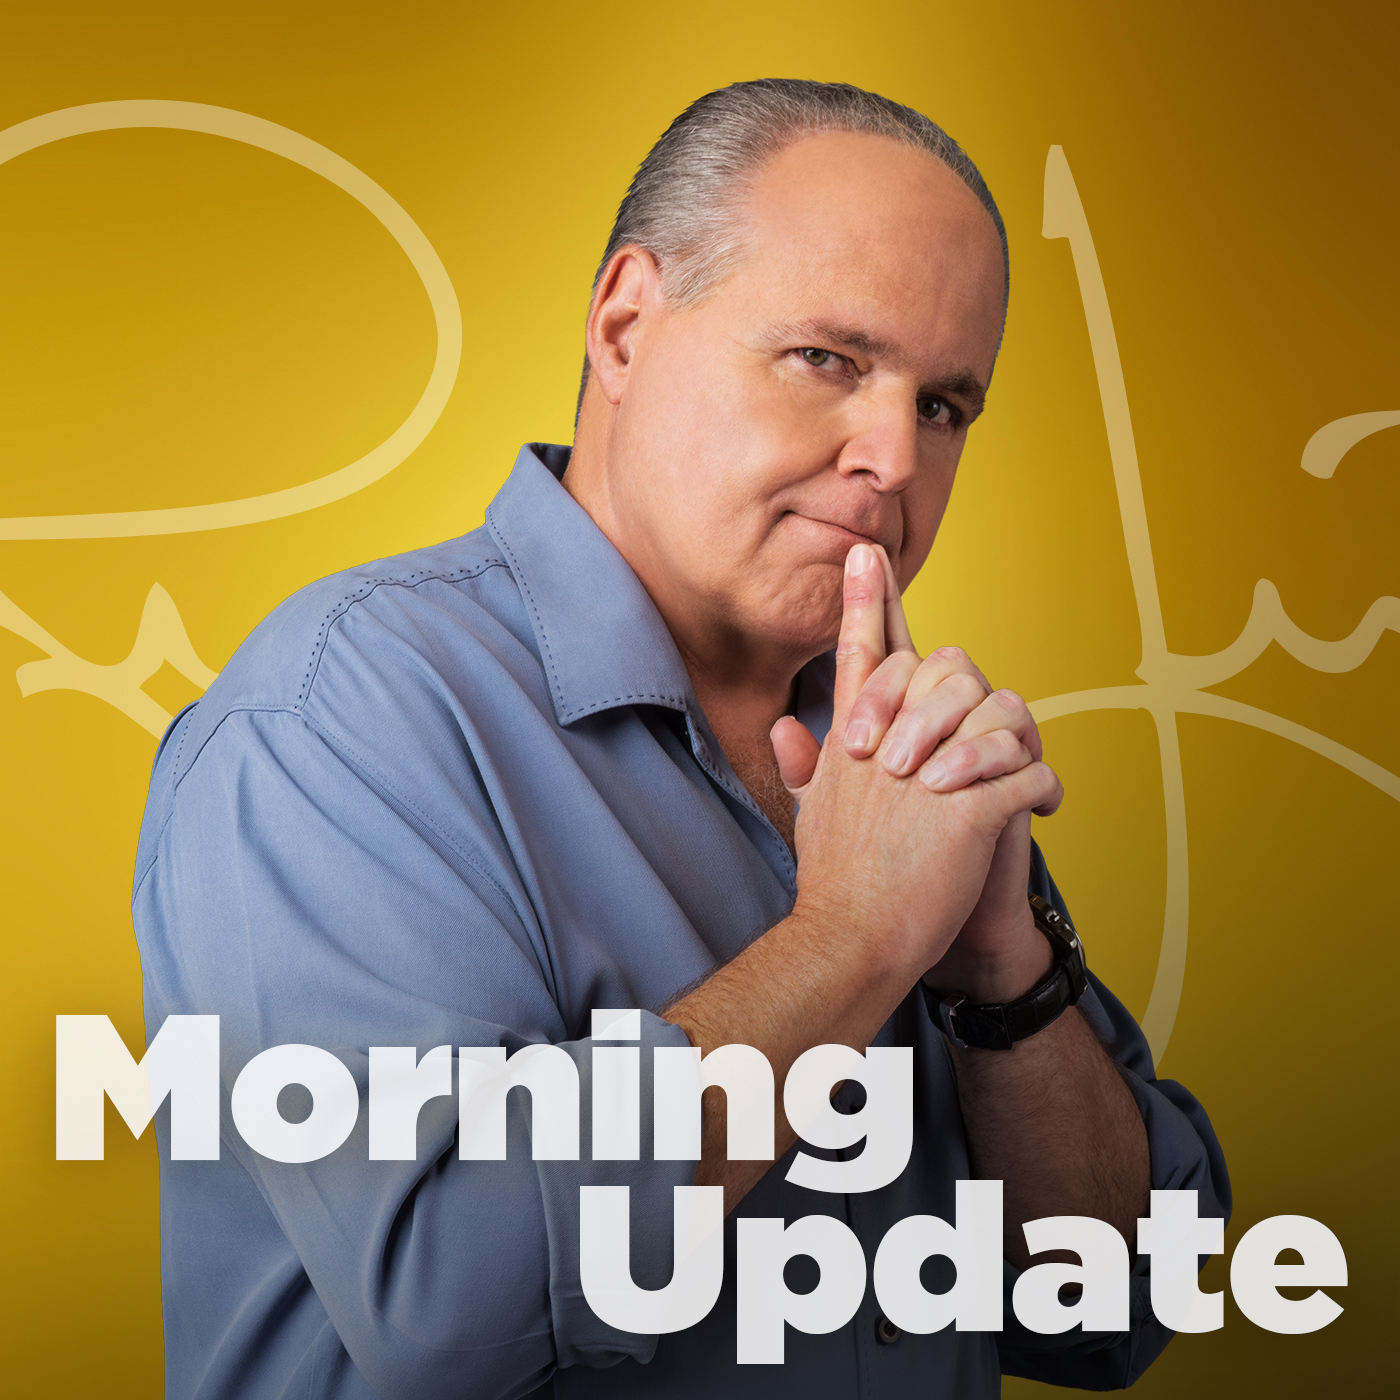 Rush Limbaugh Dec 26, 2019